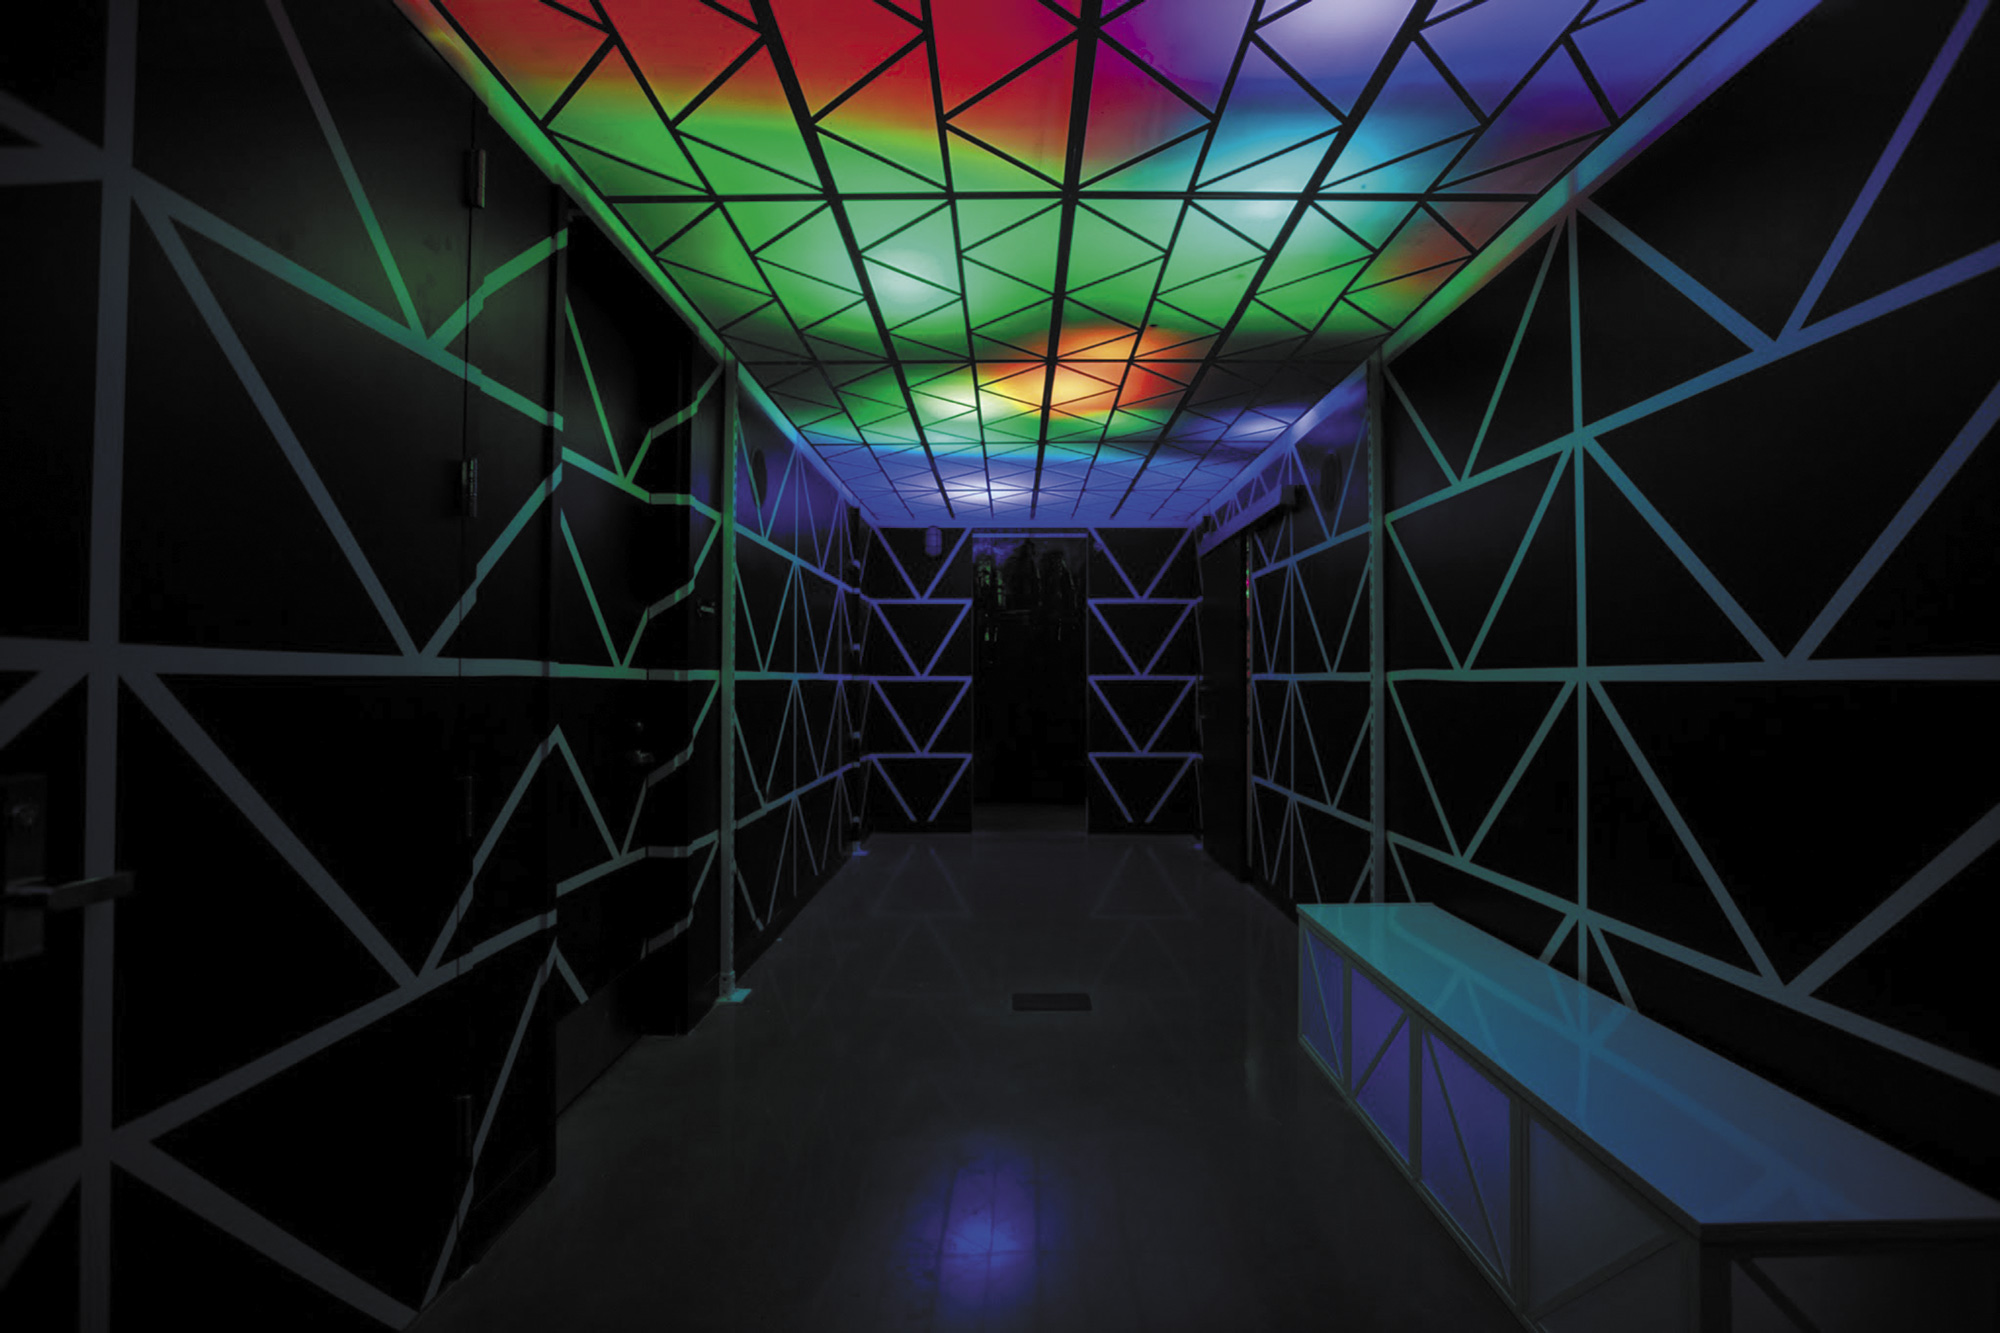 LightCanopy-LeadArtistKevin-Bourland_Meow Wolf: A Look into the 4 Converged Worlds by Jordan Rumsey